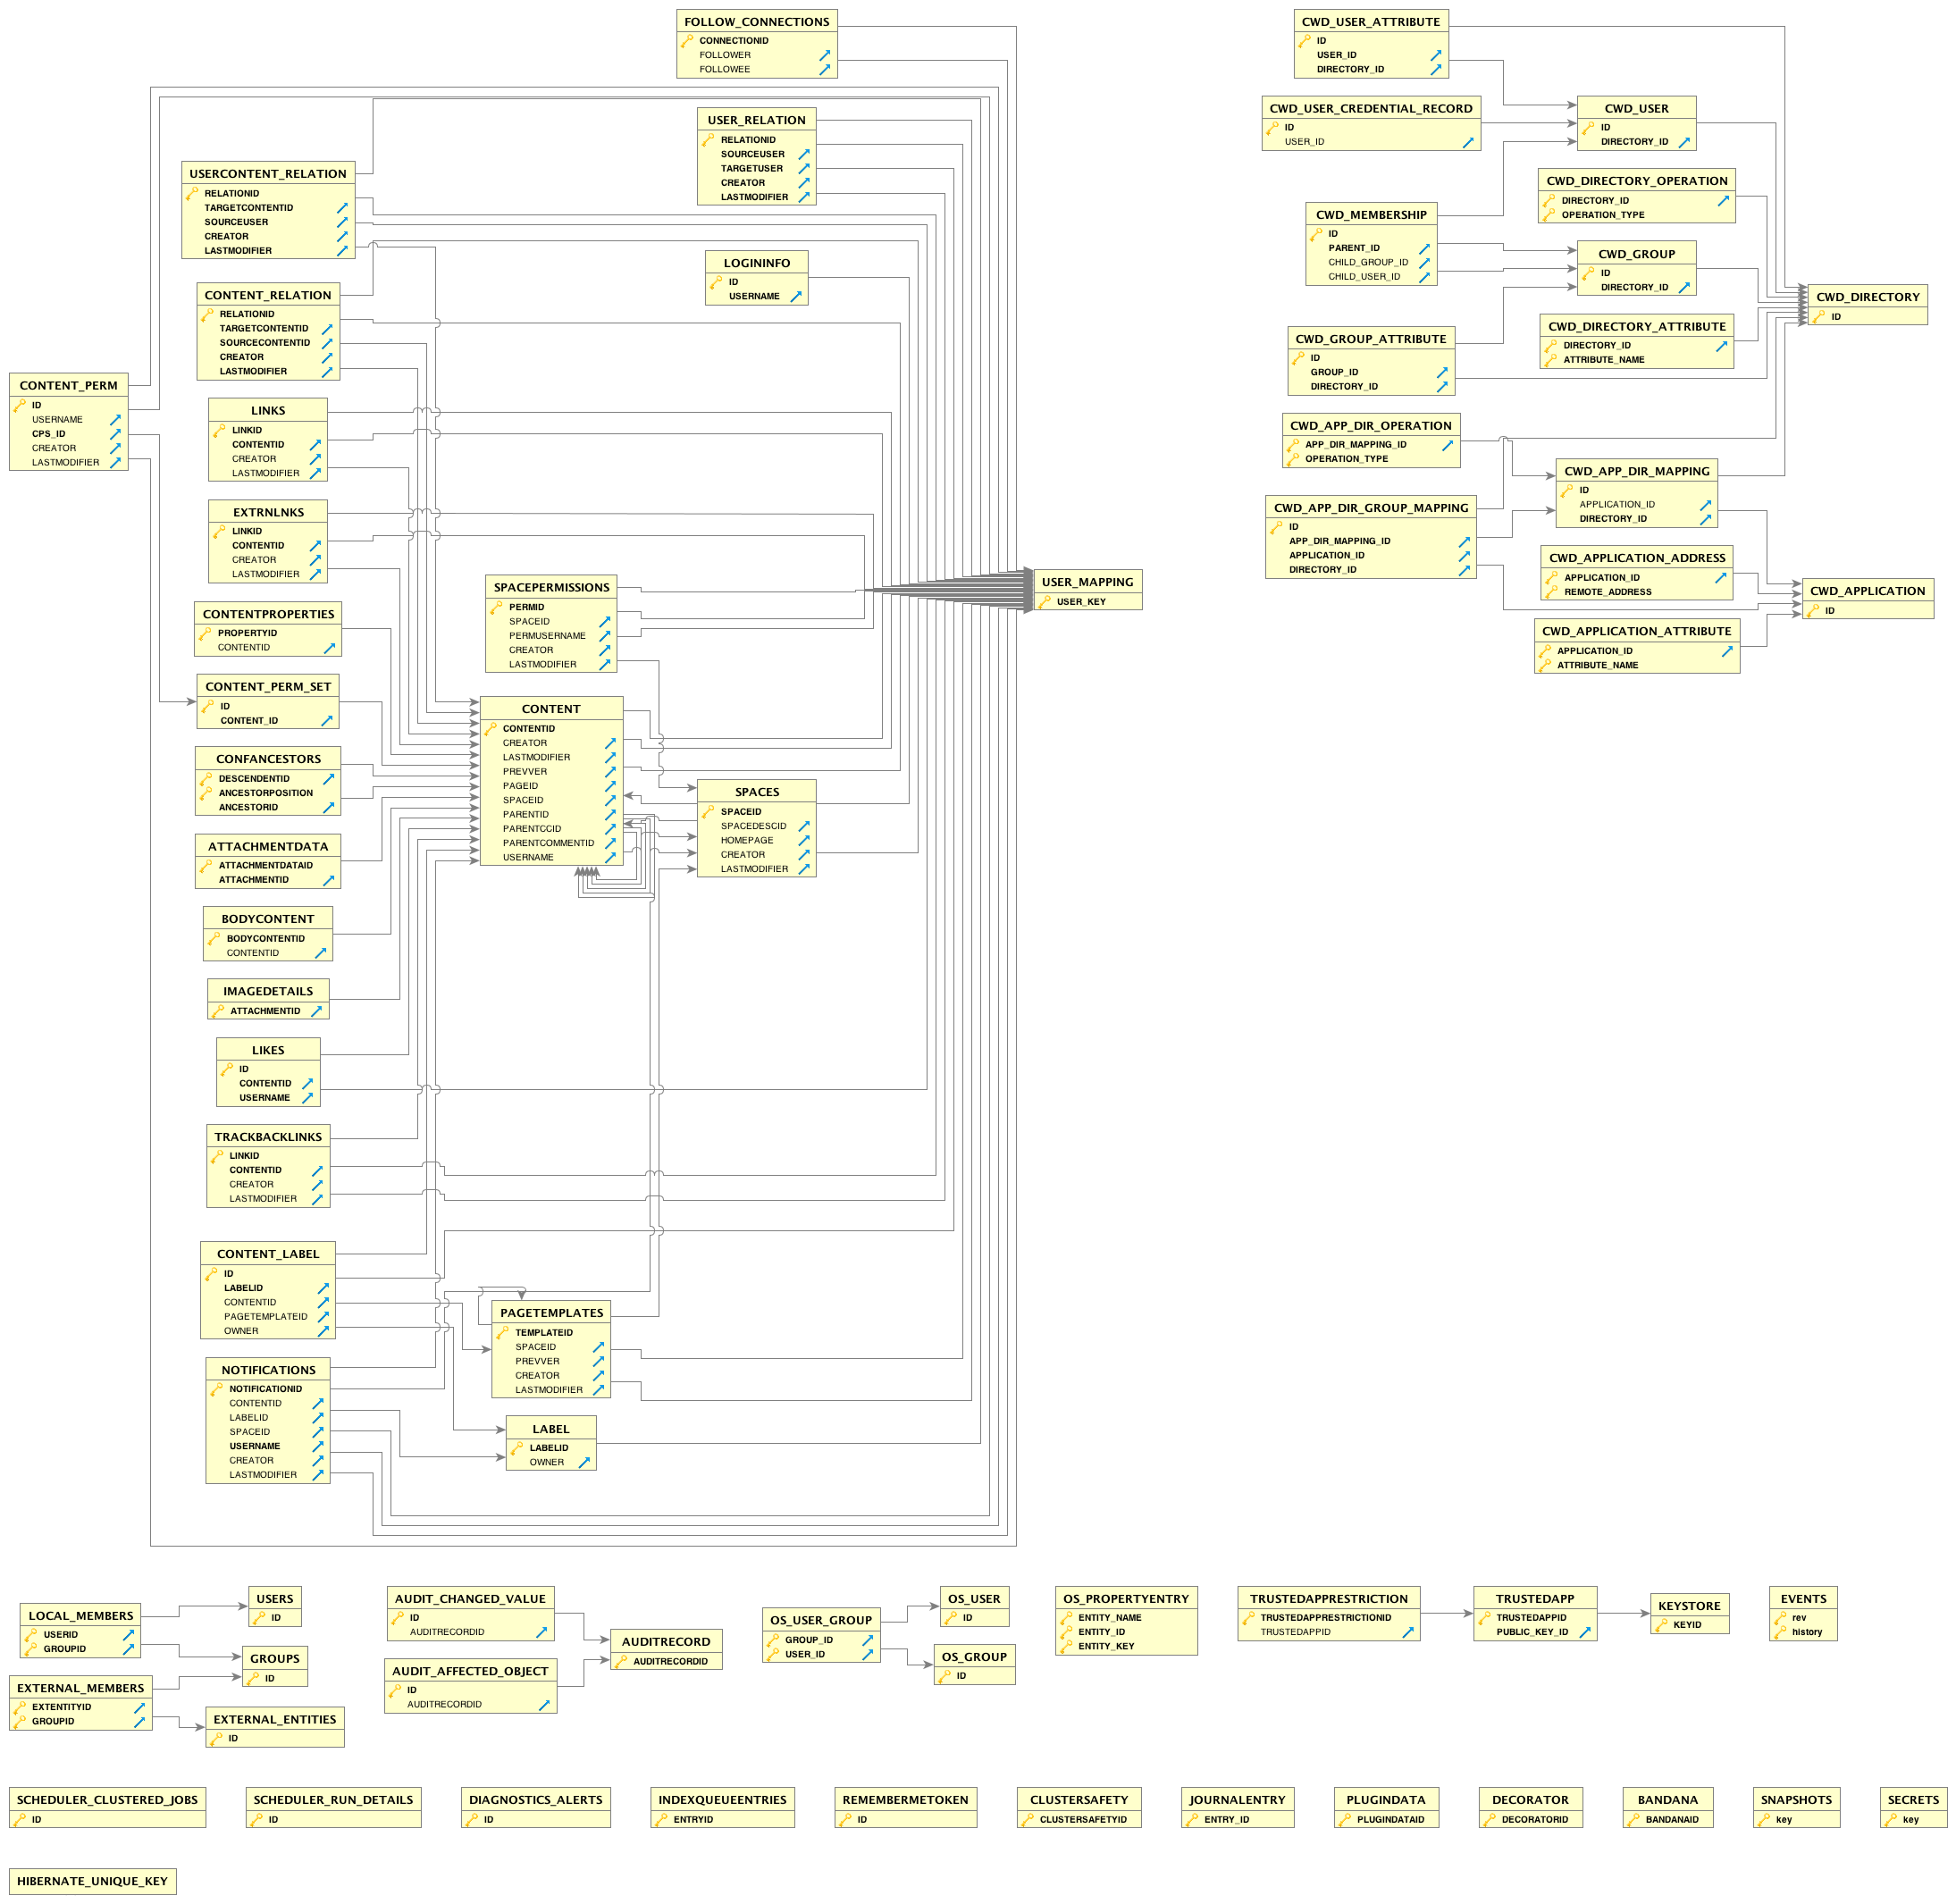 Confluence Data Model Atlassian Documentation Symbols Process Flow Diagram Entity Relationship View Our Visualization Excludes Some Tables Including Activeobjects